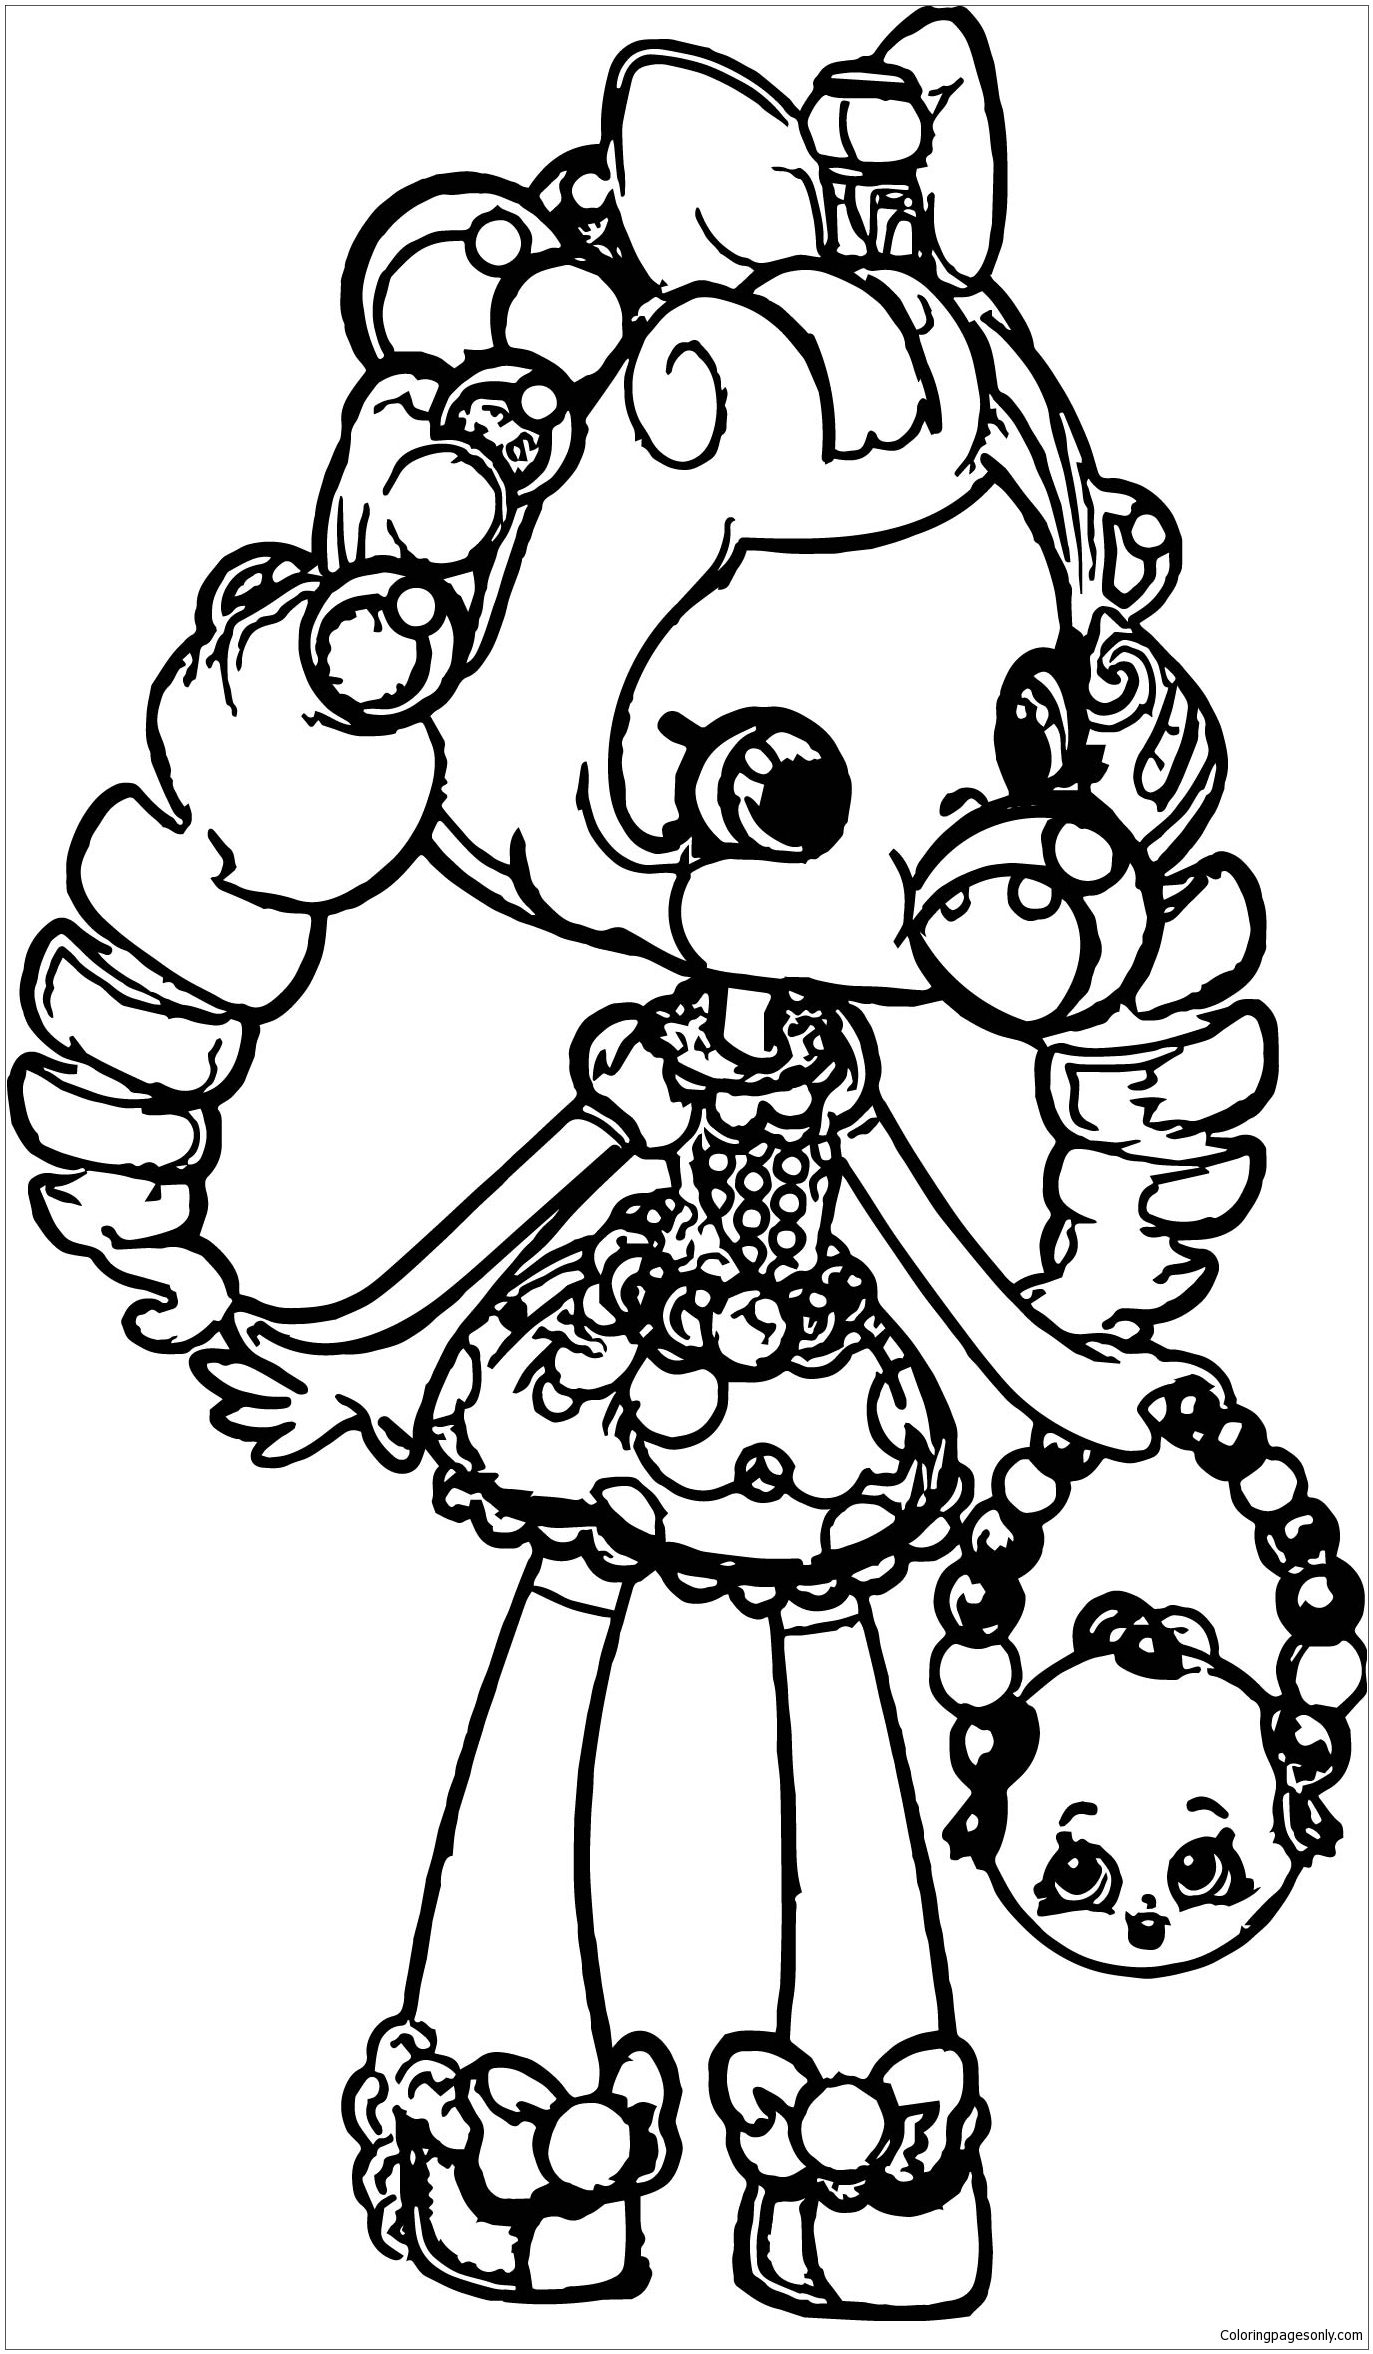 girls coloring 8 anime girl coloring pages pdf jpg ai illustrator girls coloring